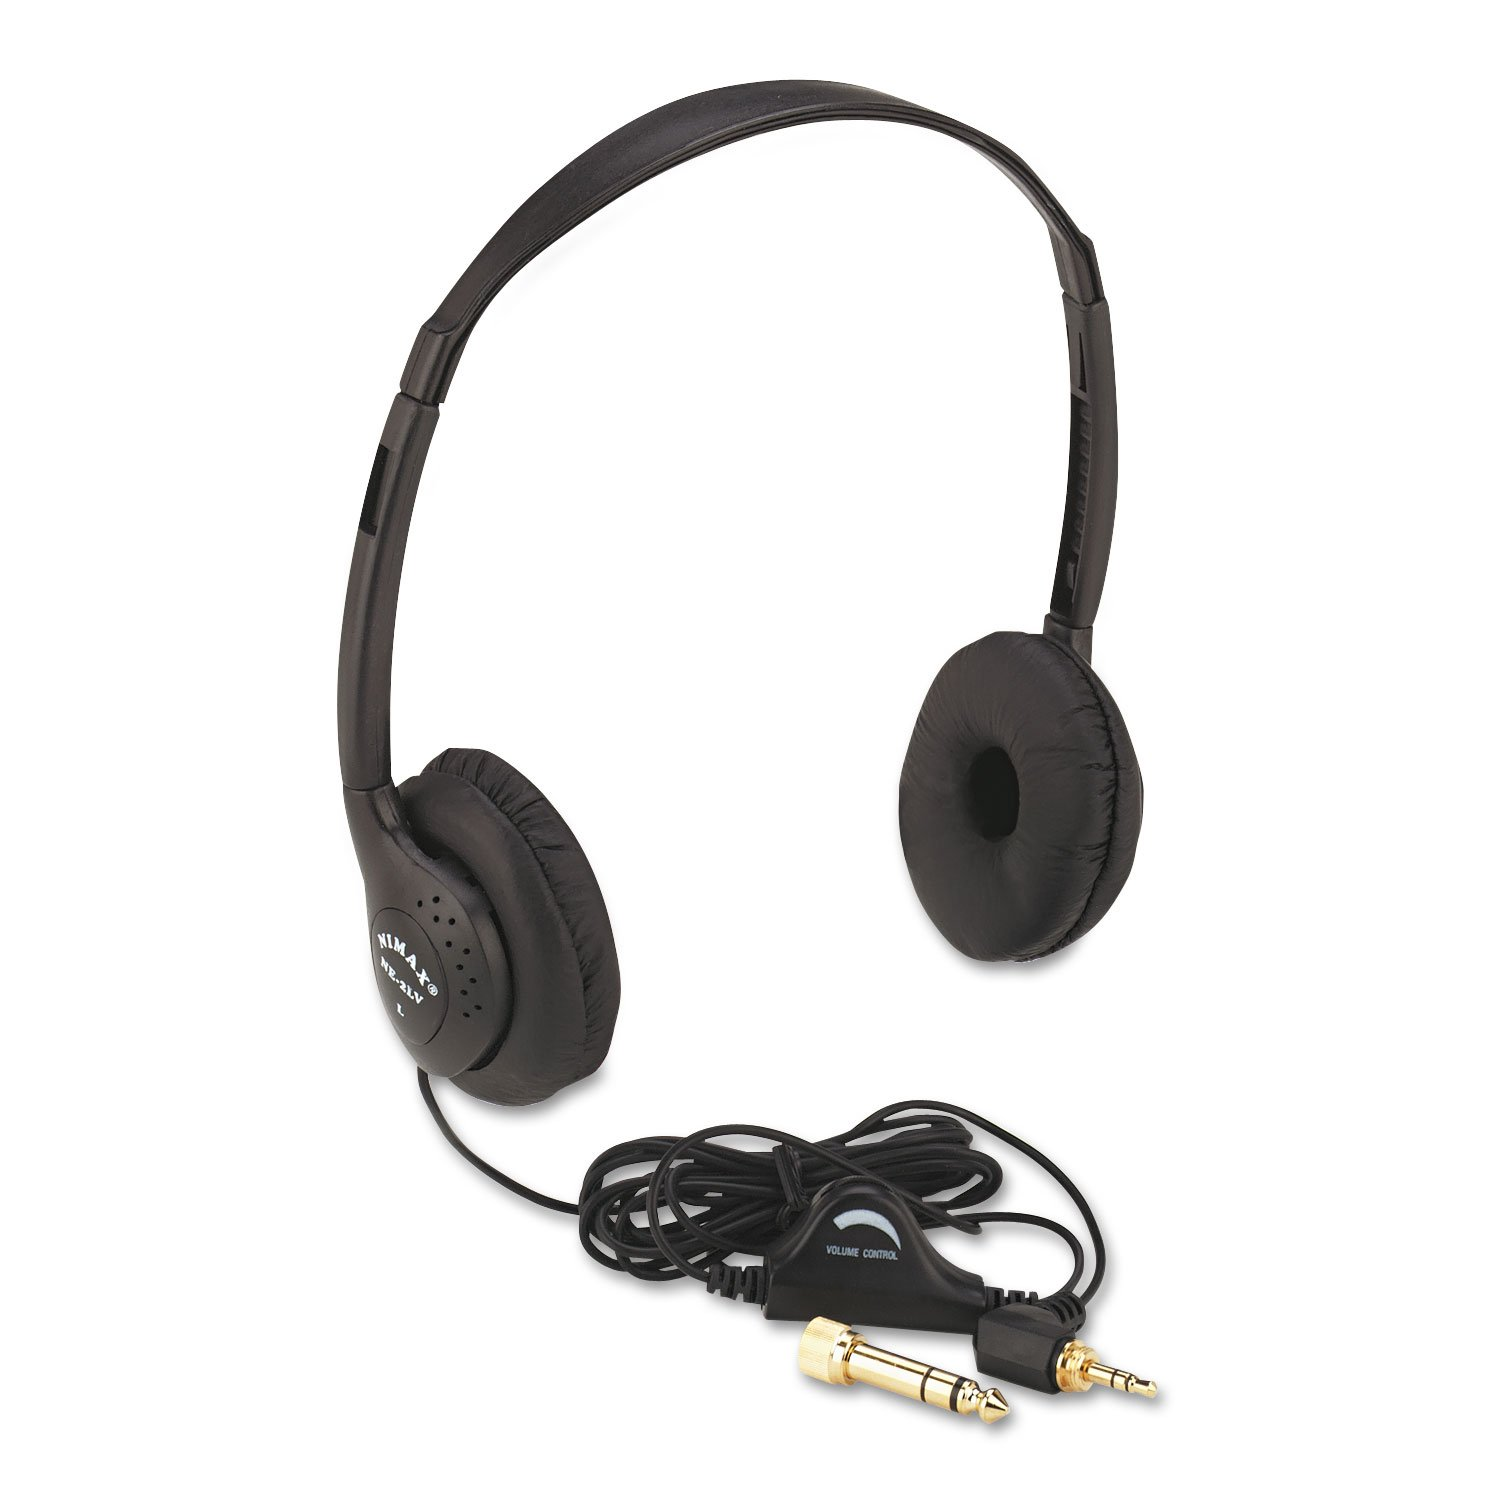 APLSL1006 - Personal Multimedia Stereo Headphones with Volume Control